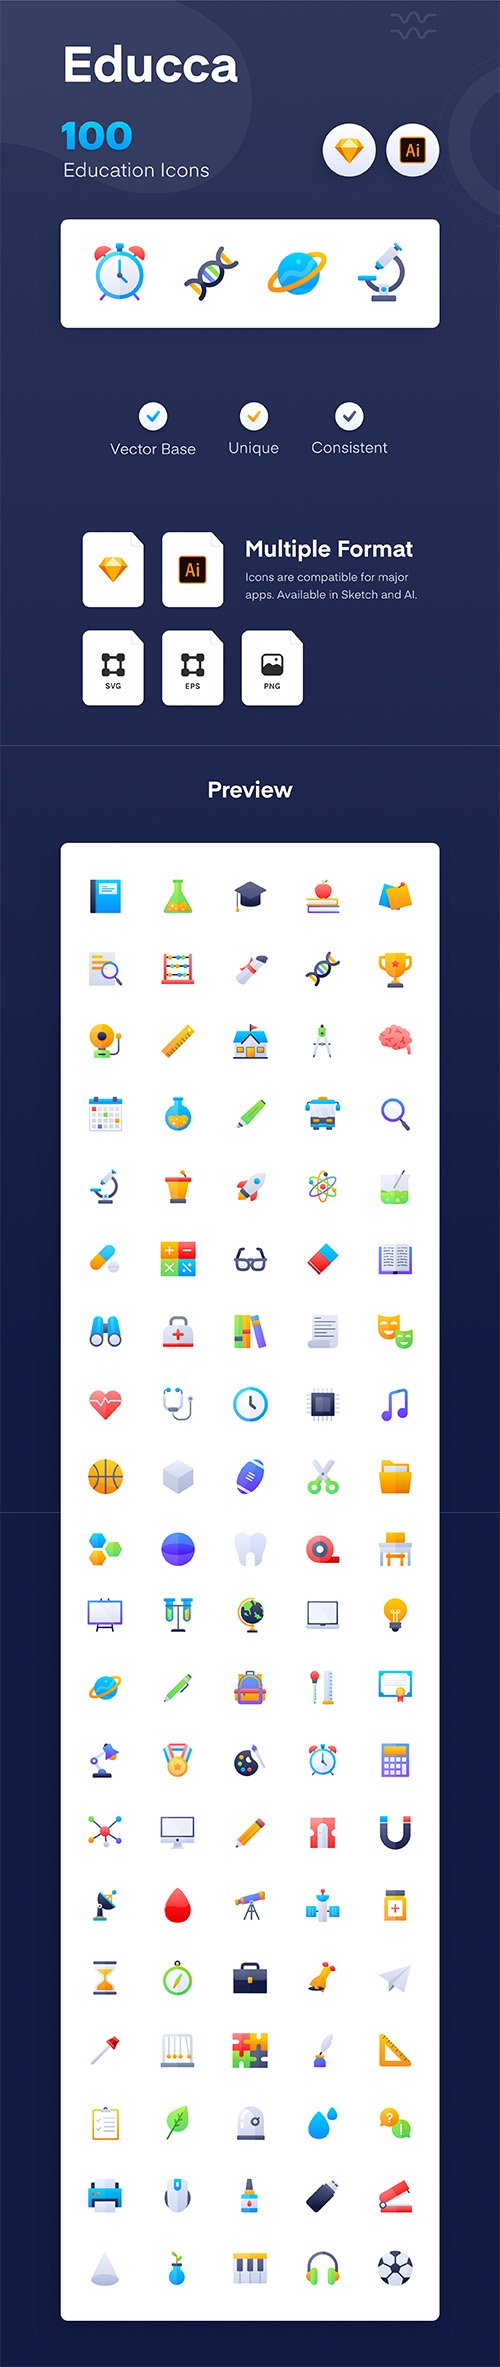 Educca : Education Icon Pack